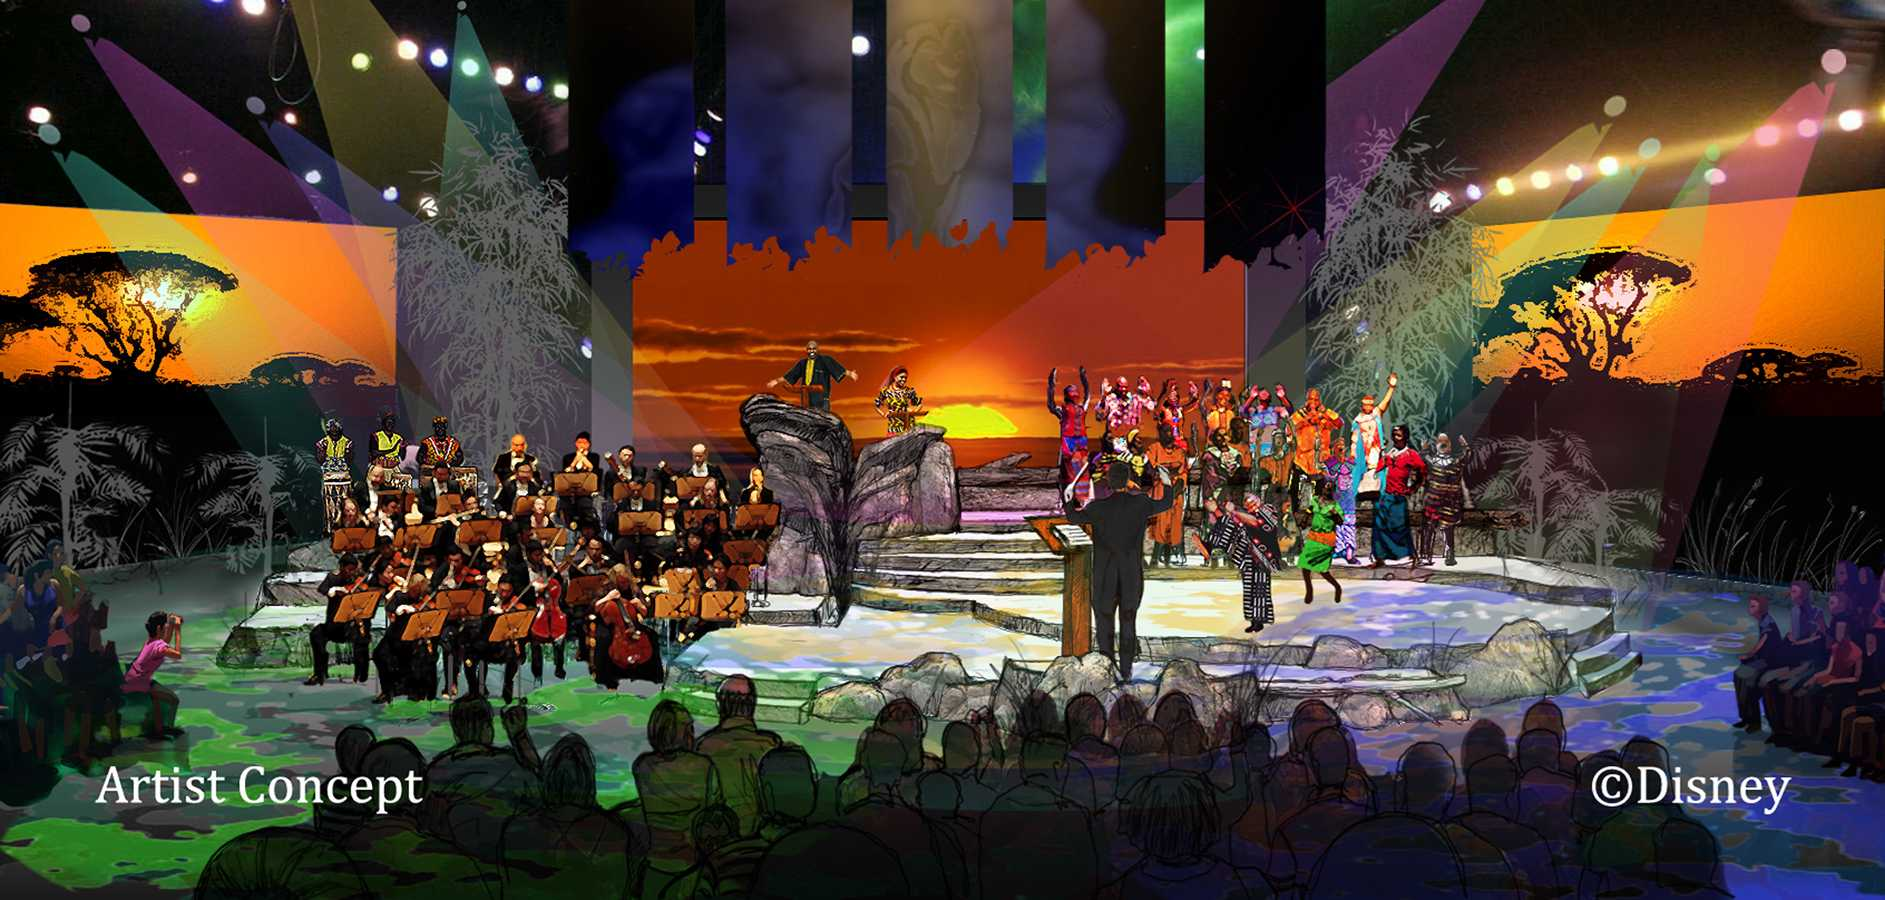 Harambe Nights - Lion King Concert in the Wild concept art